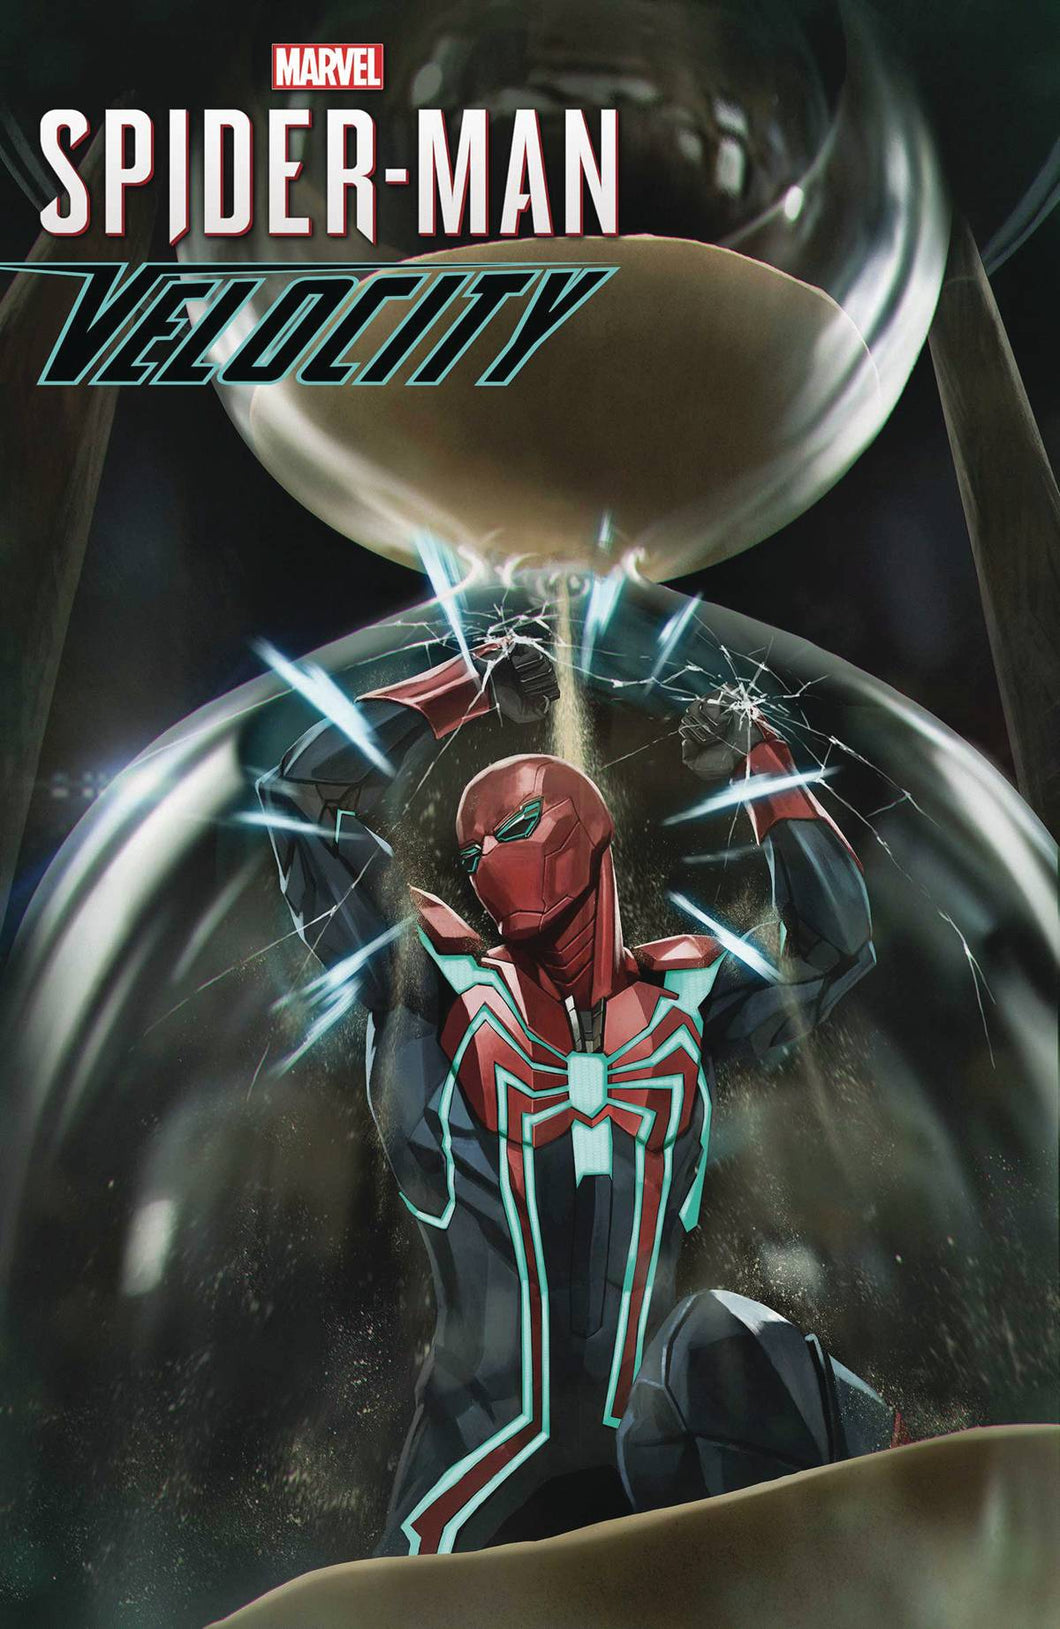 SPIDER-MAN VELOCITY #4 (OF 5)  11/20/19 FOC 10/28/19